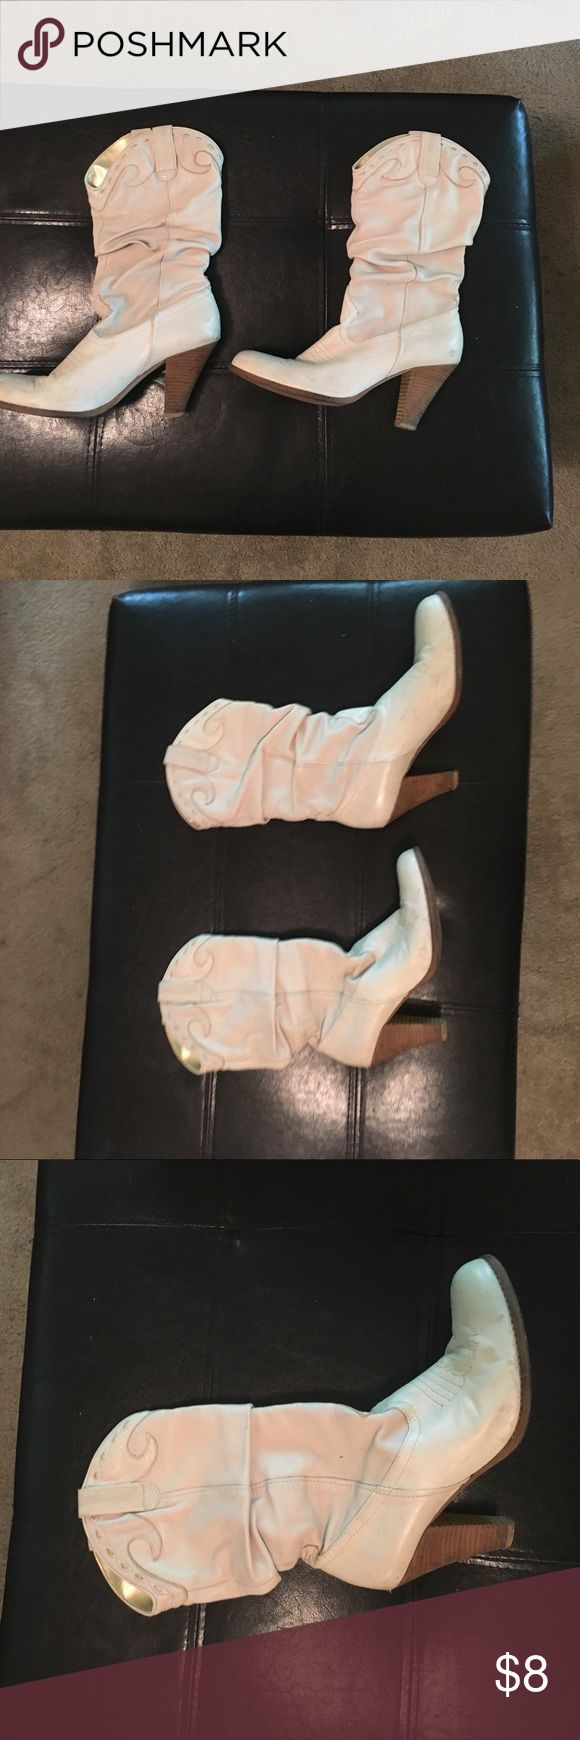 💙 2 for $5 💙Jessica Simpson Fashion Cowboy boots Jessica Simpson fashion cowboy boots - very worn! But still good to wear for a barn party 😉 Jessica Simpson Shoes Heeled Boots